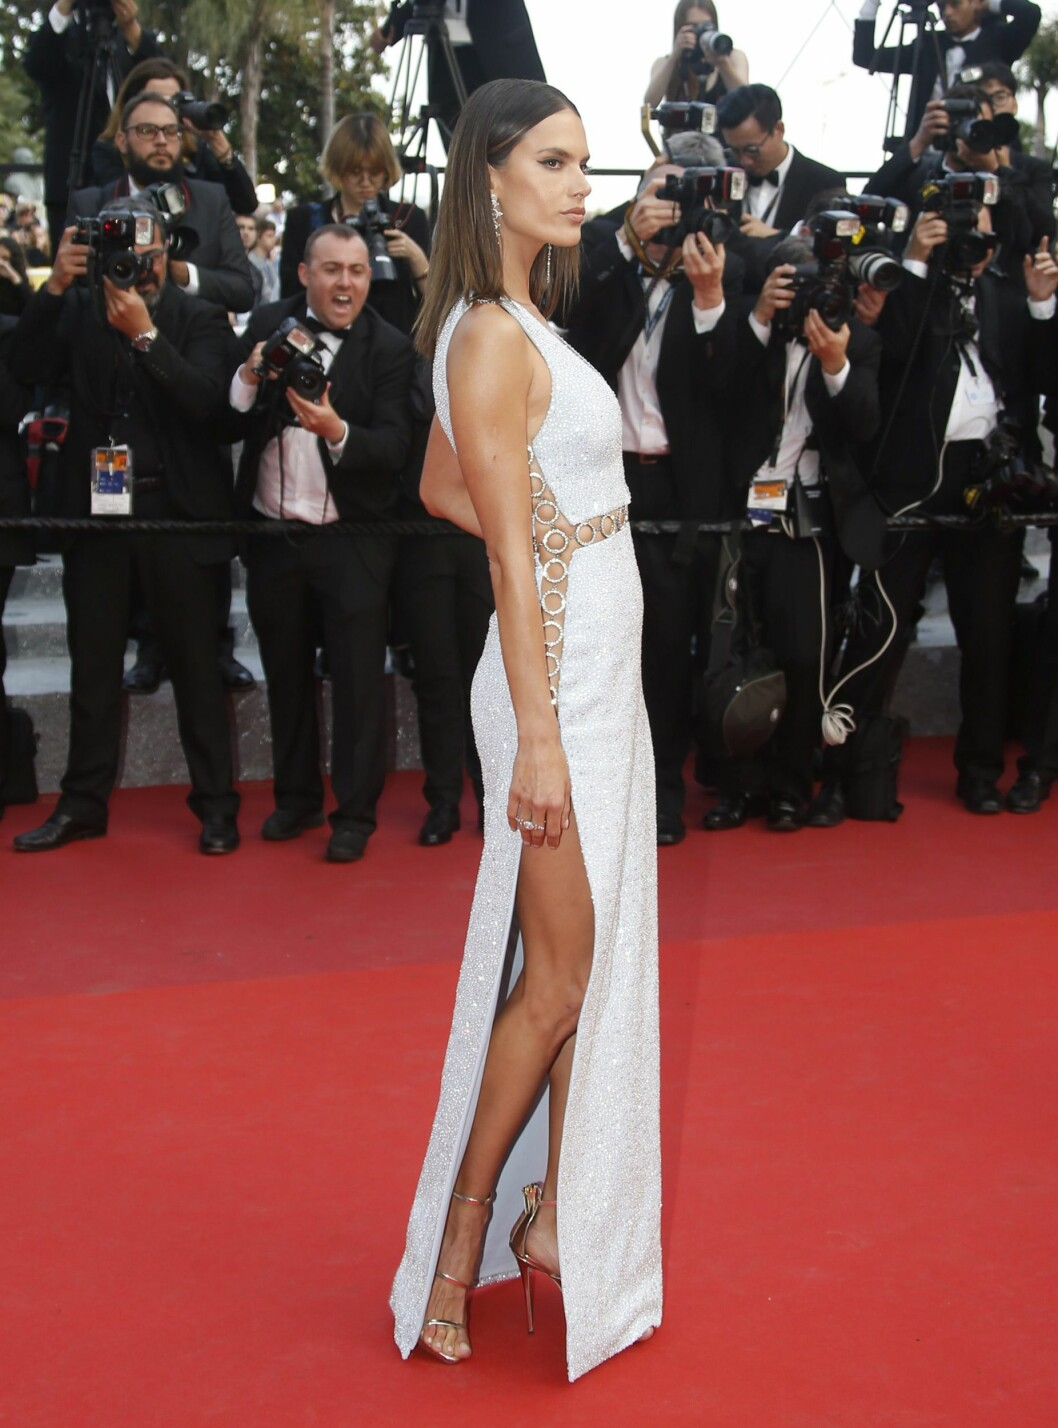 SEXY: Supermodell Alessandra Ambrosio viste også hud på «The Unknown Girl»-premieren. Foto: Epa